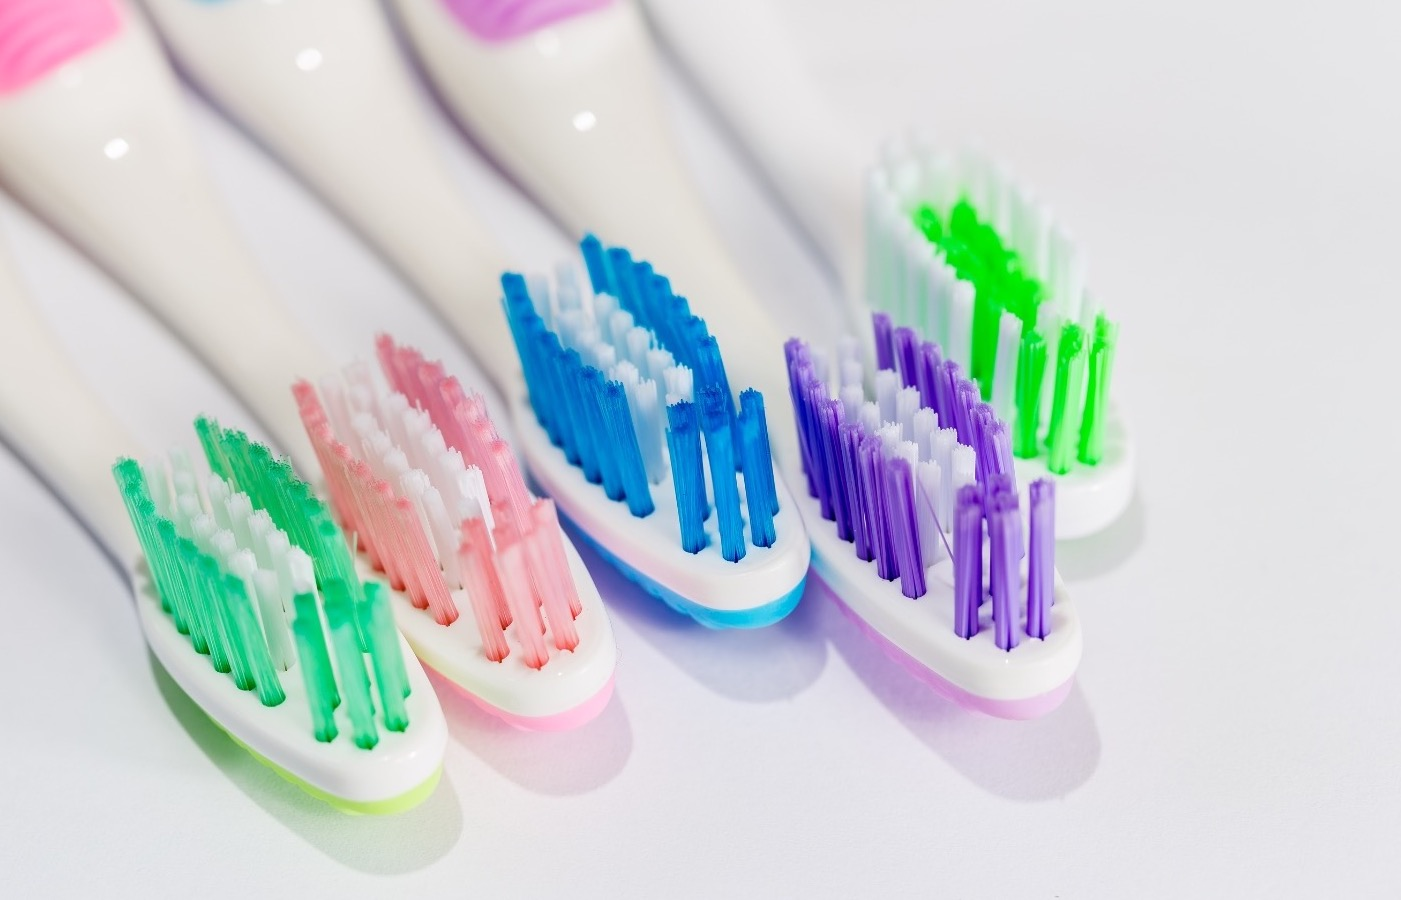 Toothbrushes_edited_edited_edited